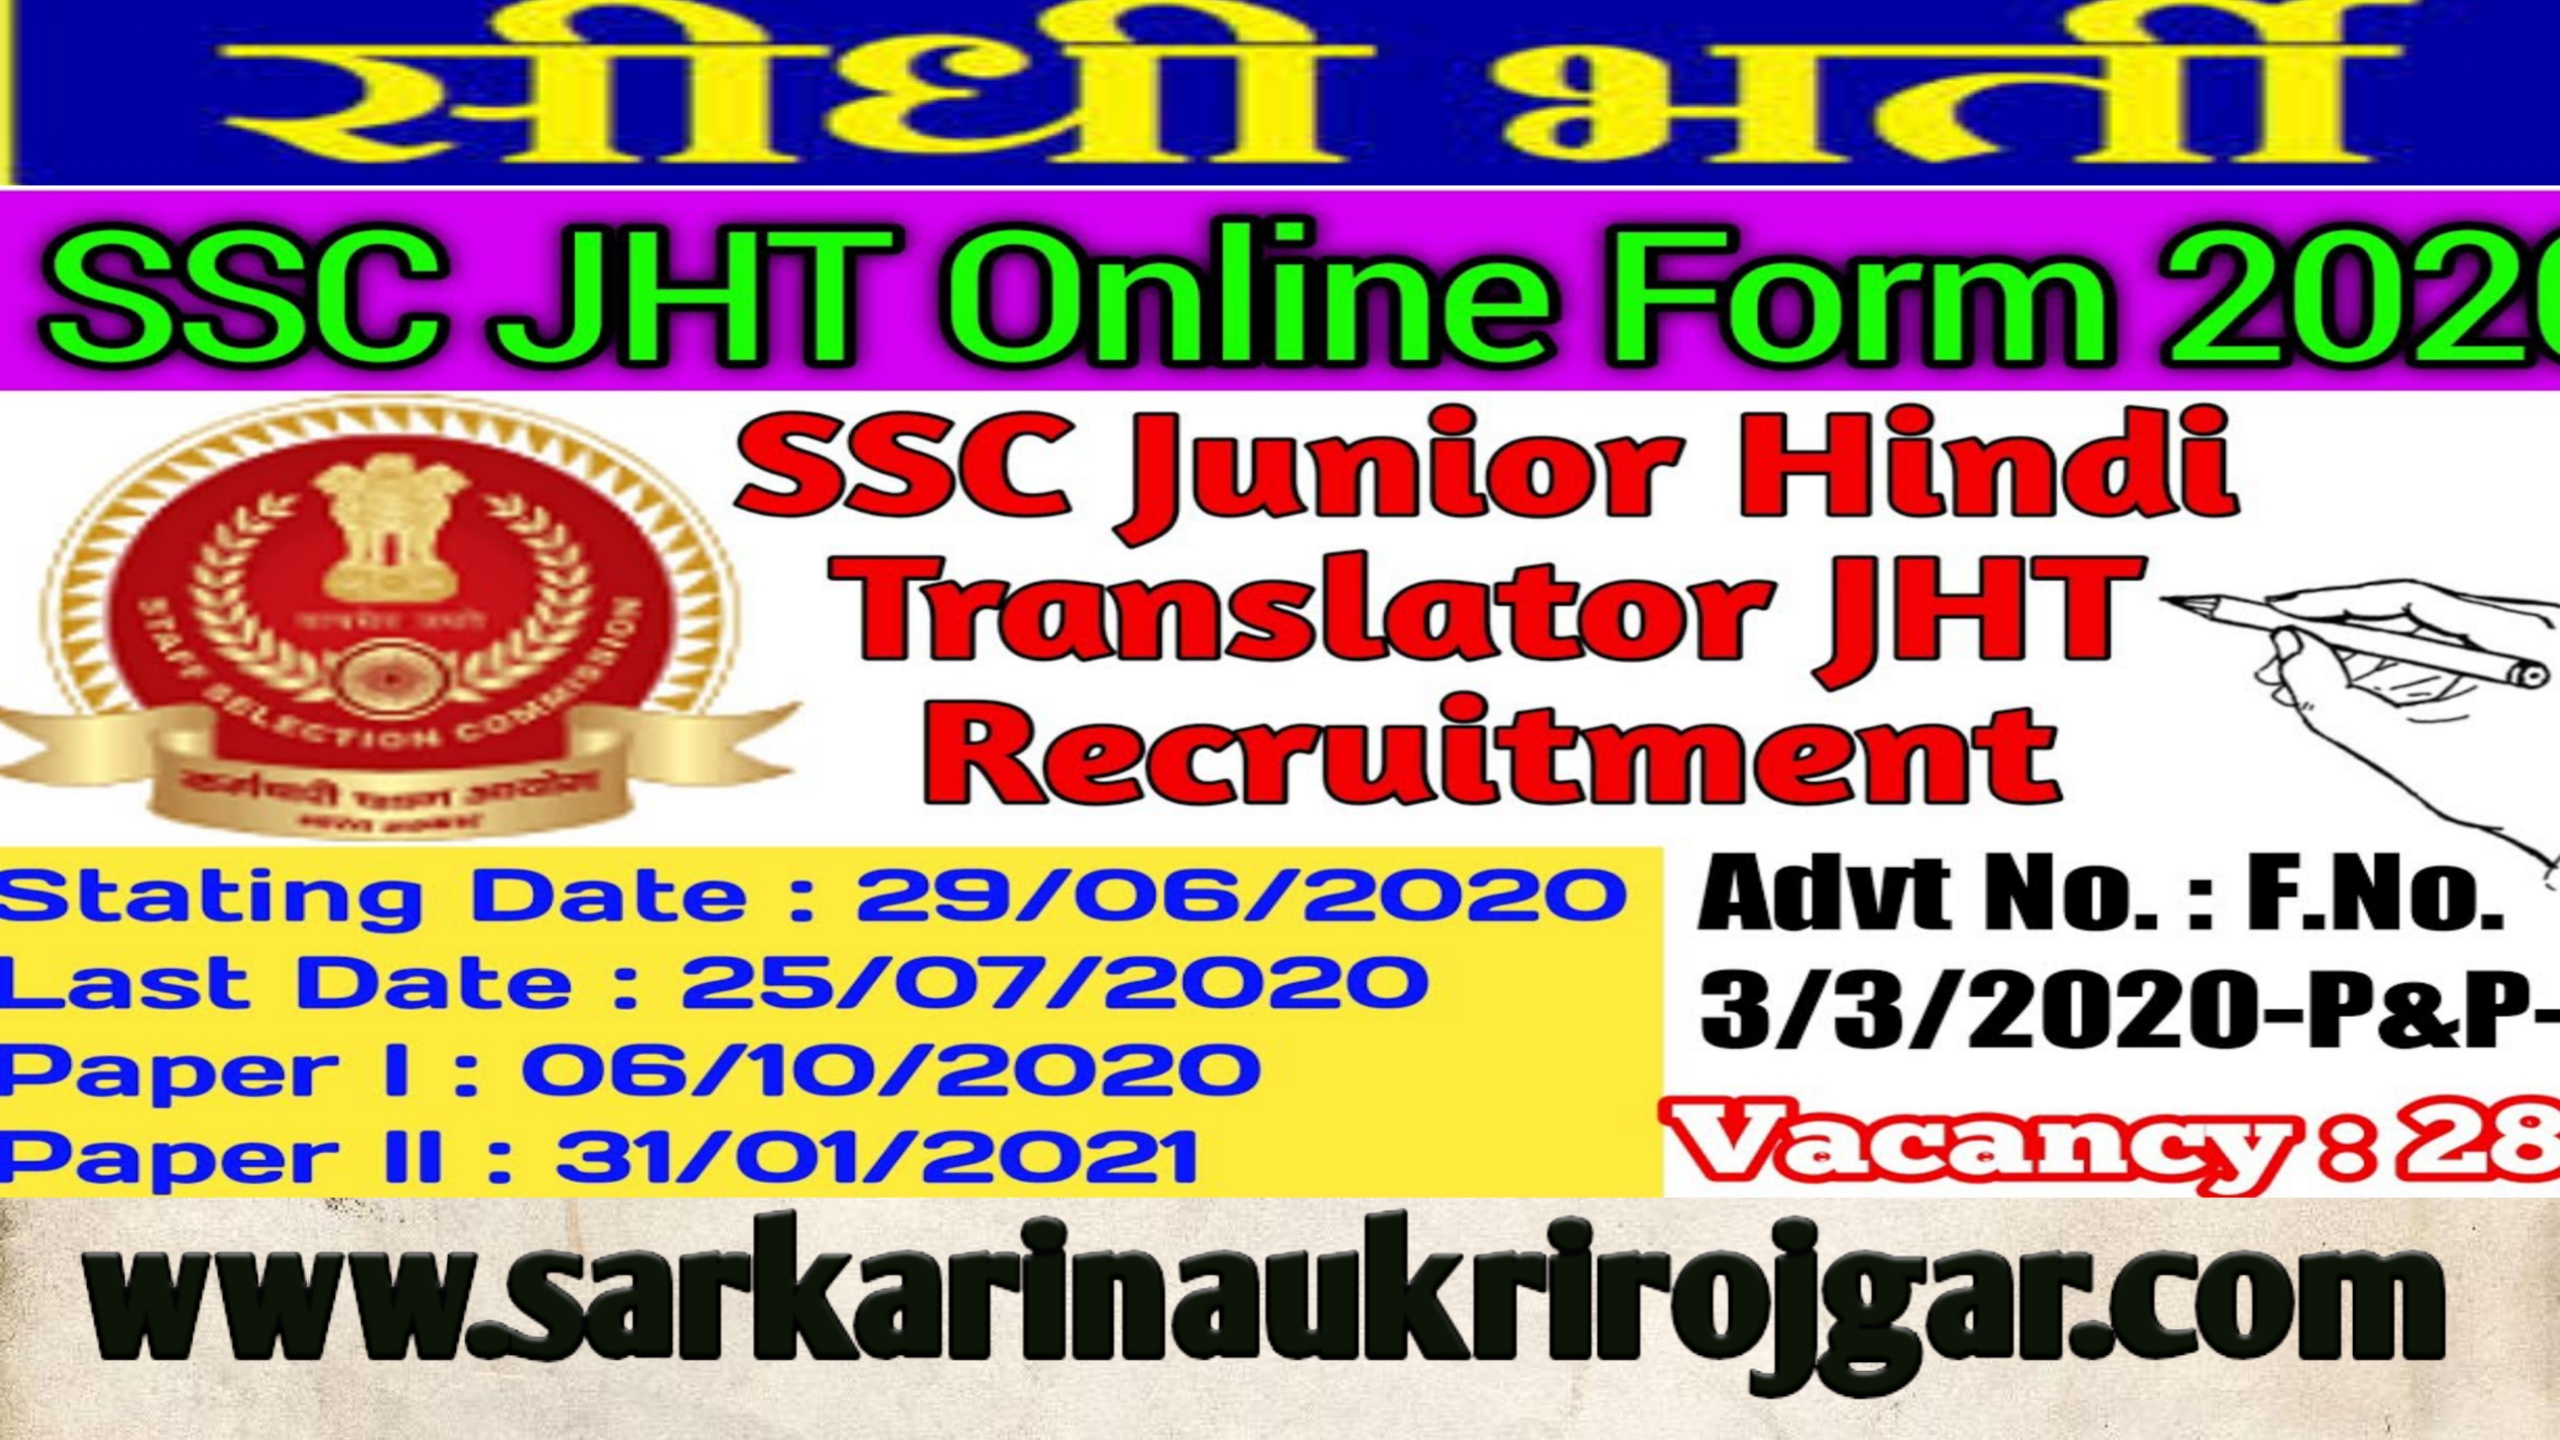 SSC JHT Recruitment Online Form 2020